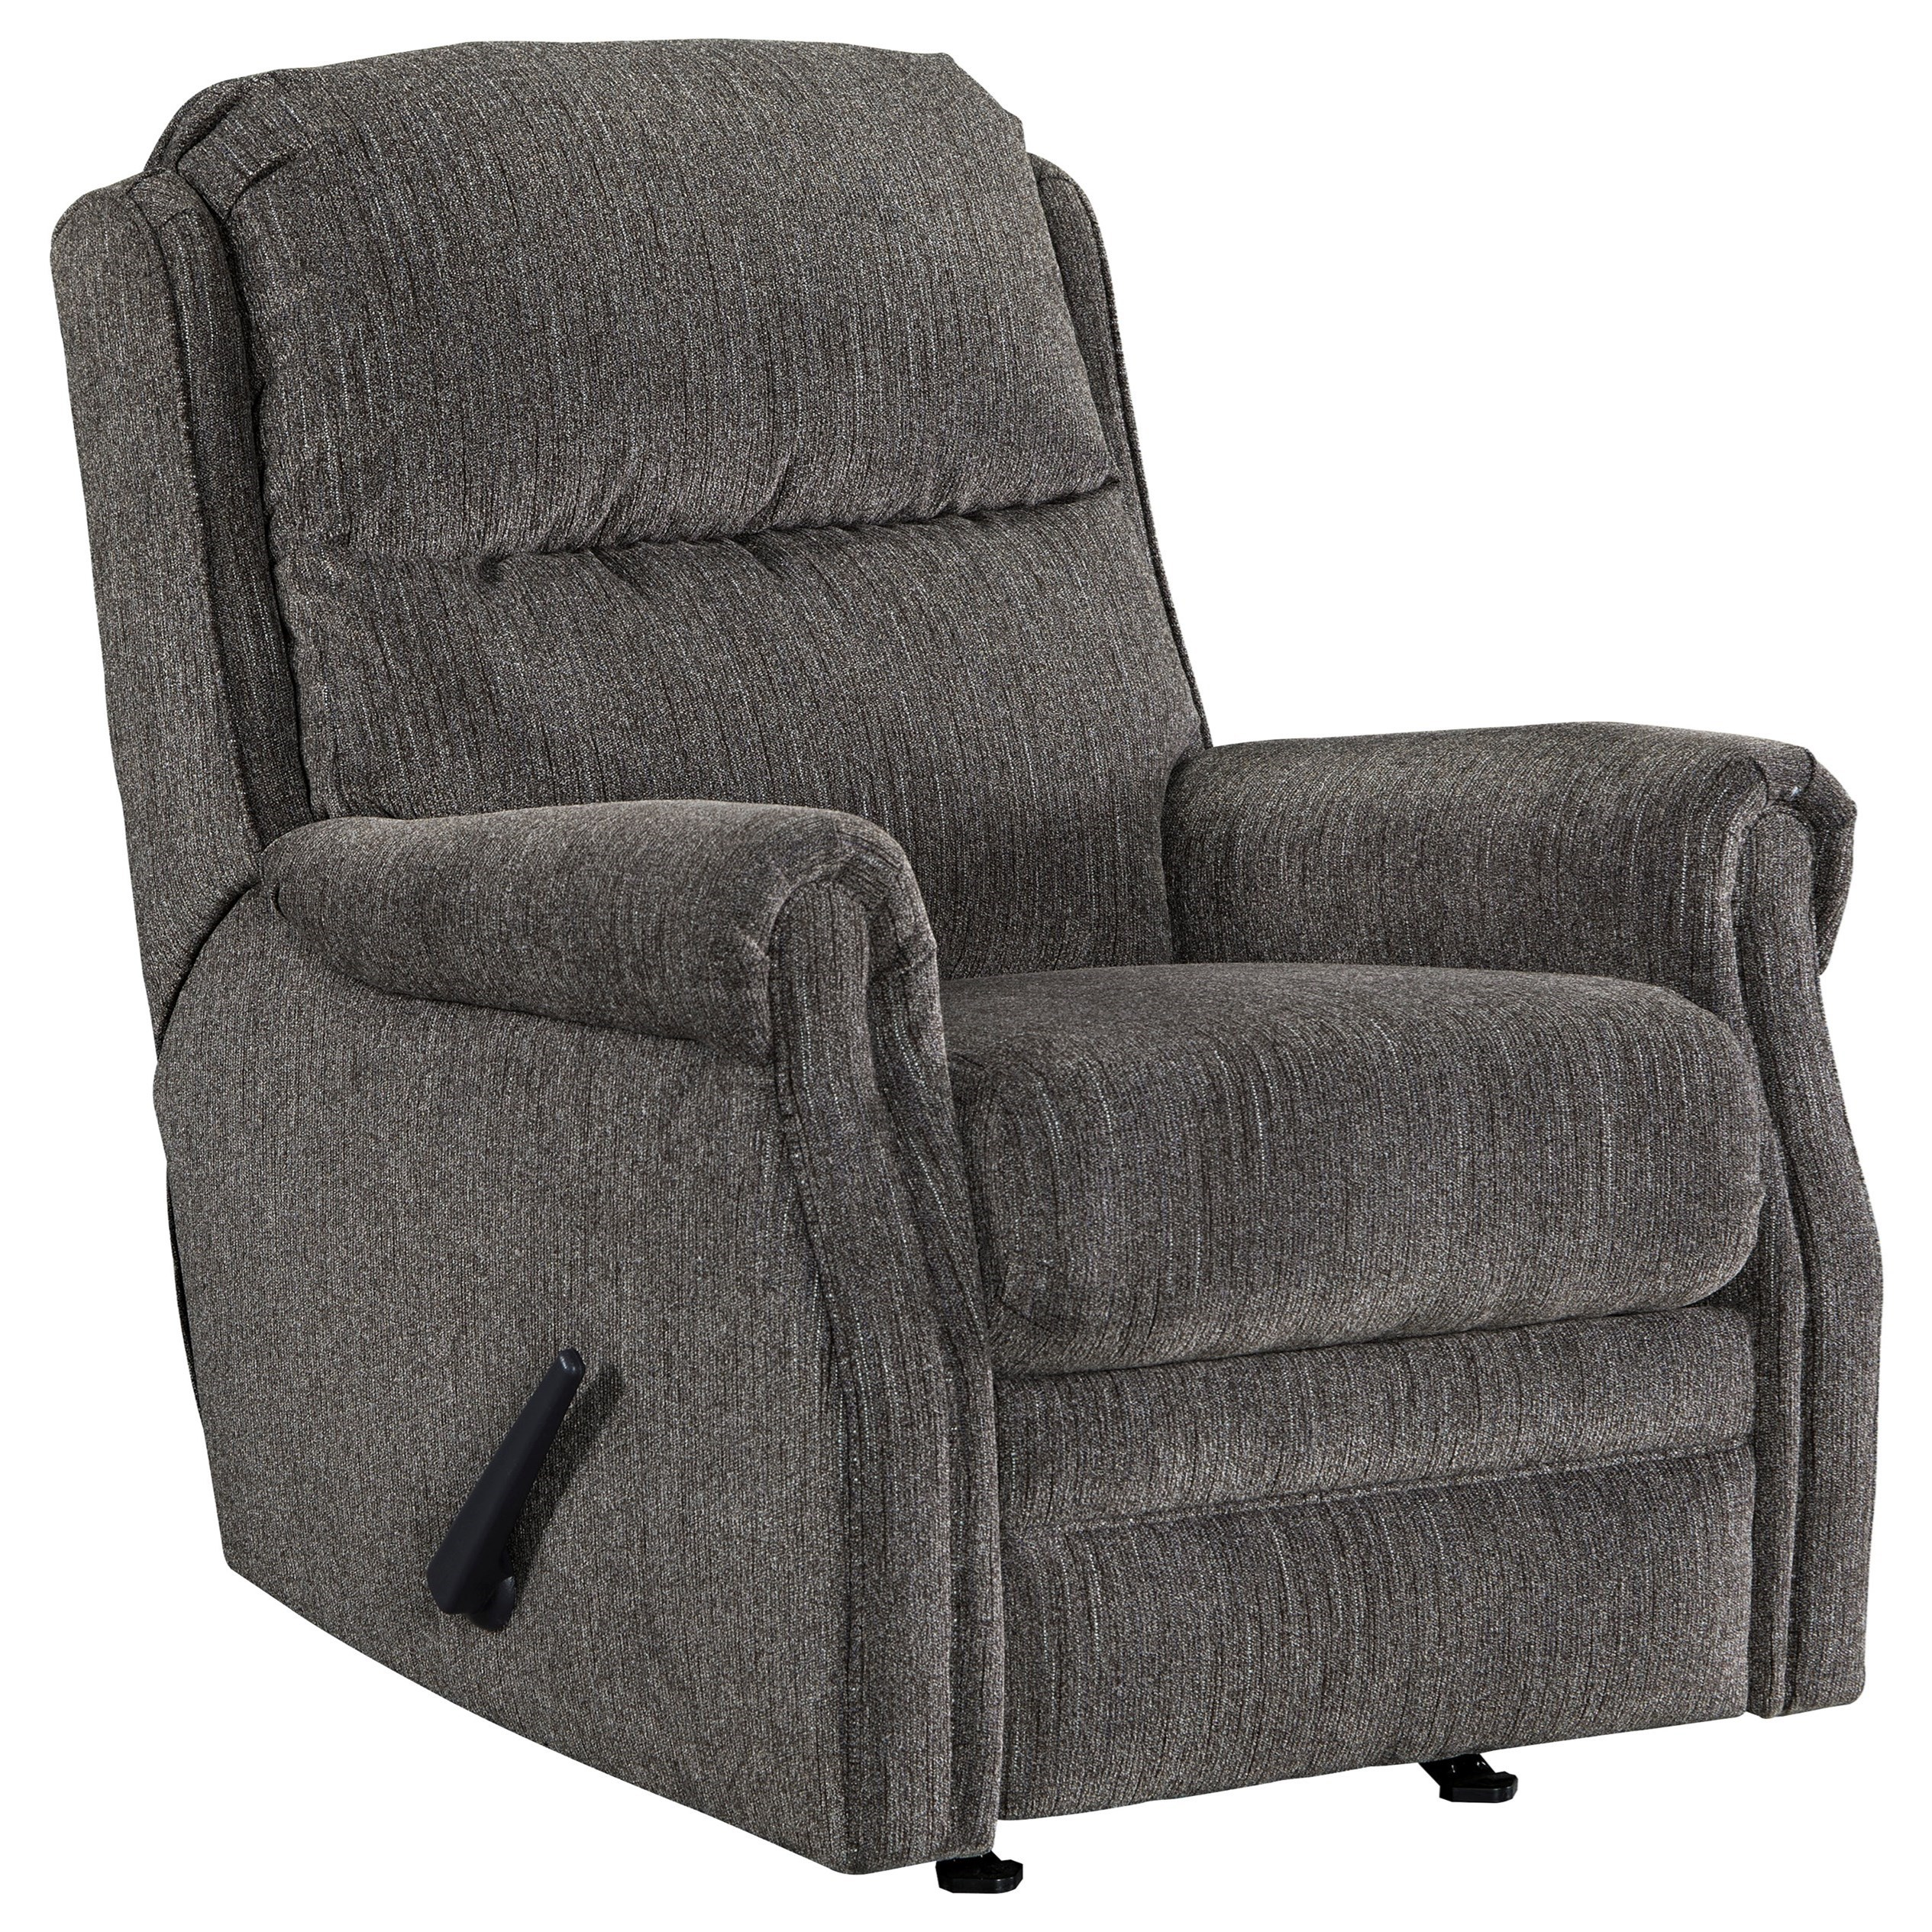 Signature Design by Ashley Earles Rocker Recliner - Item Number: 6430425